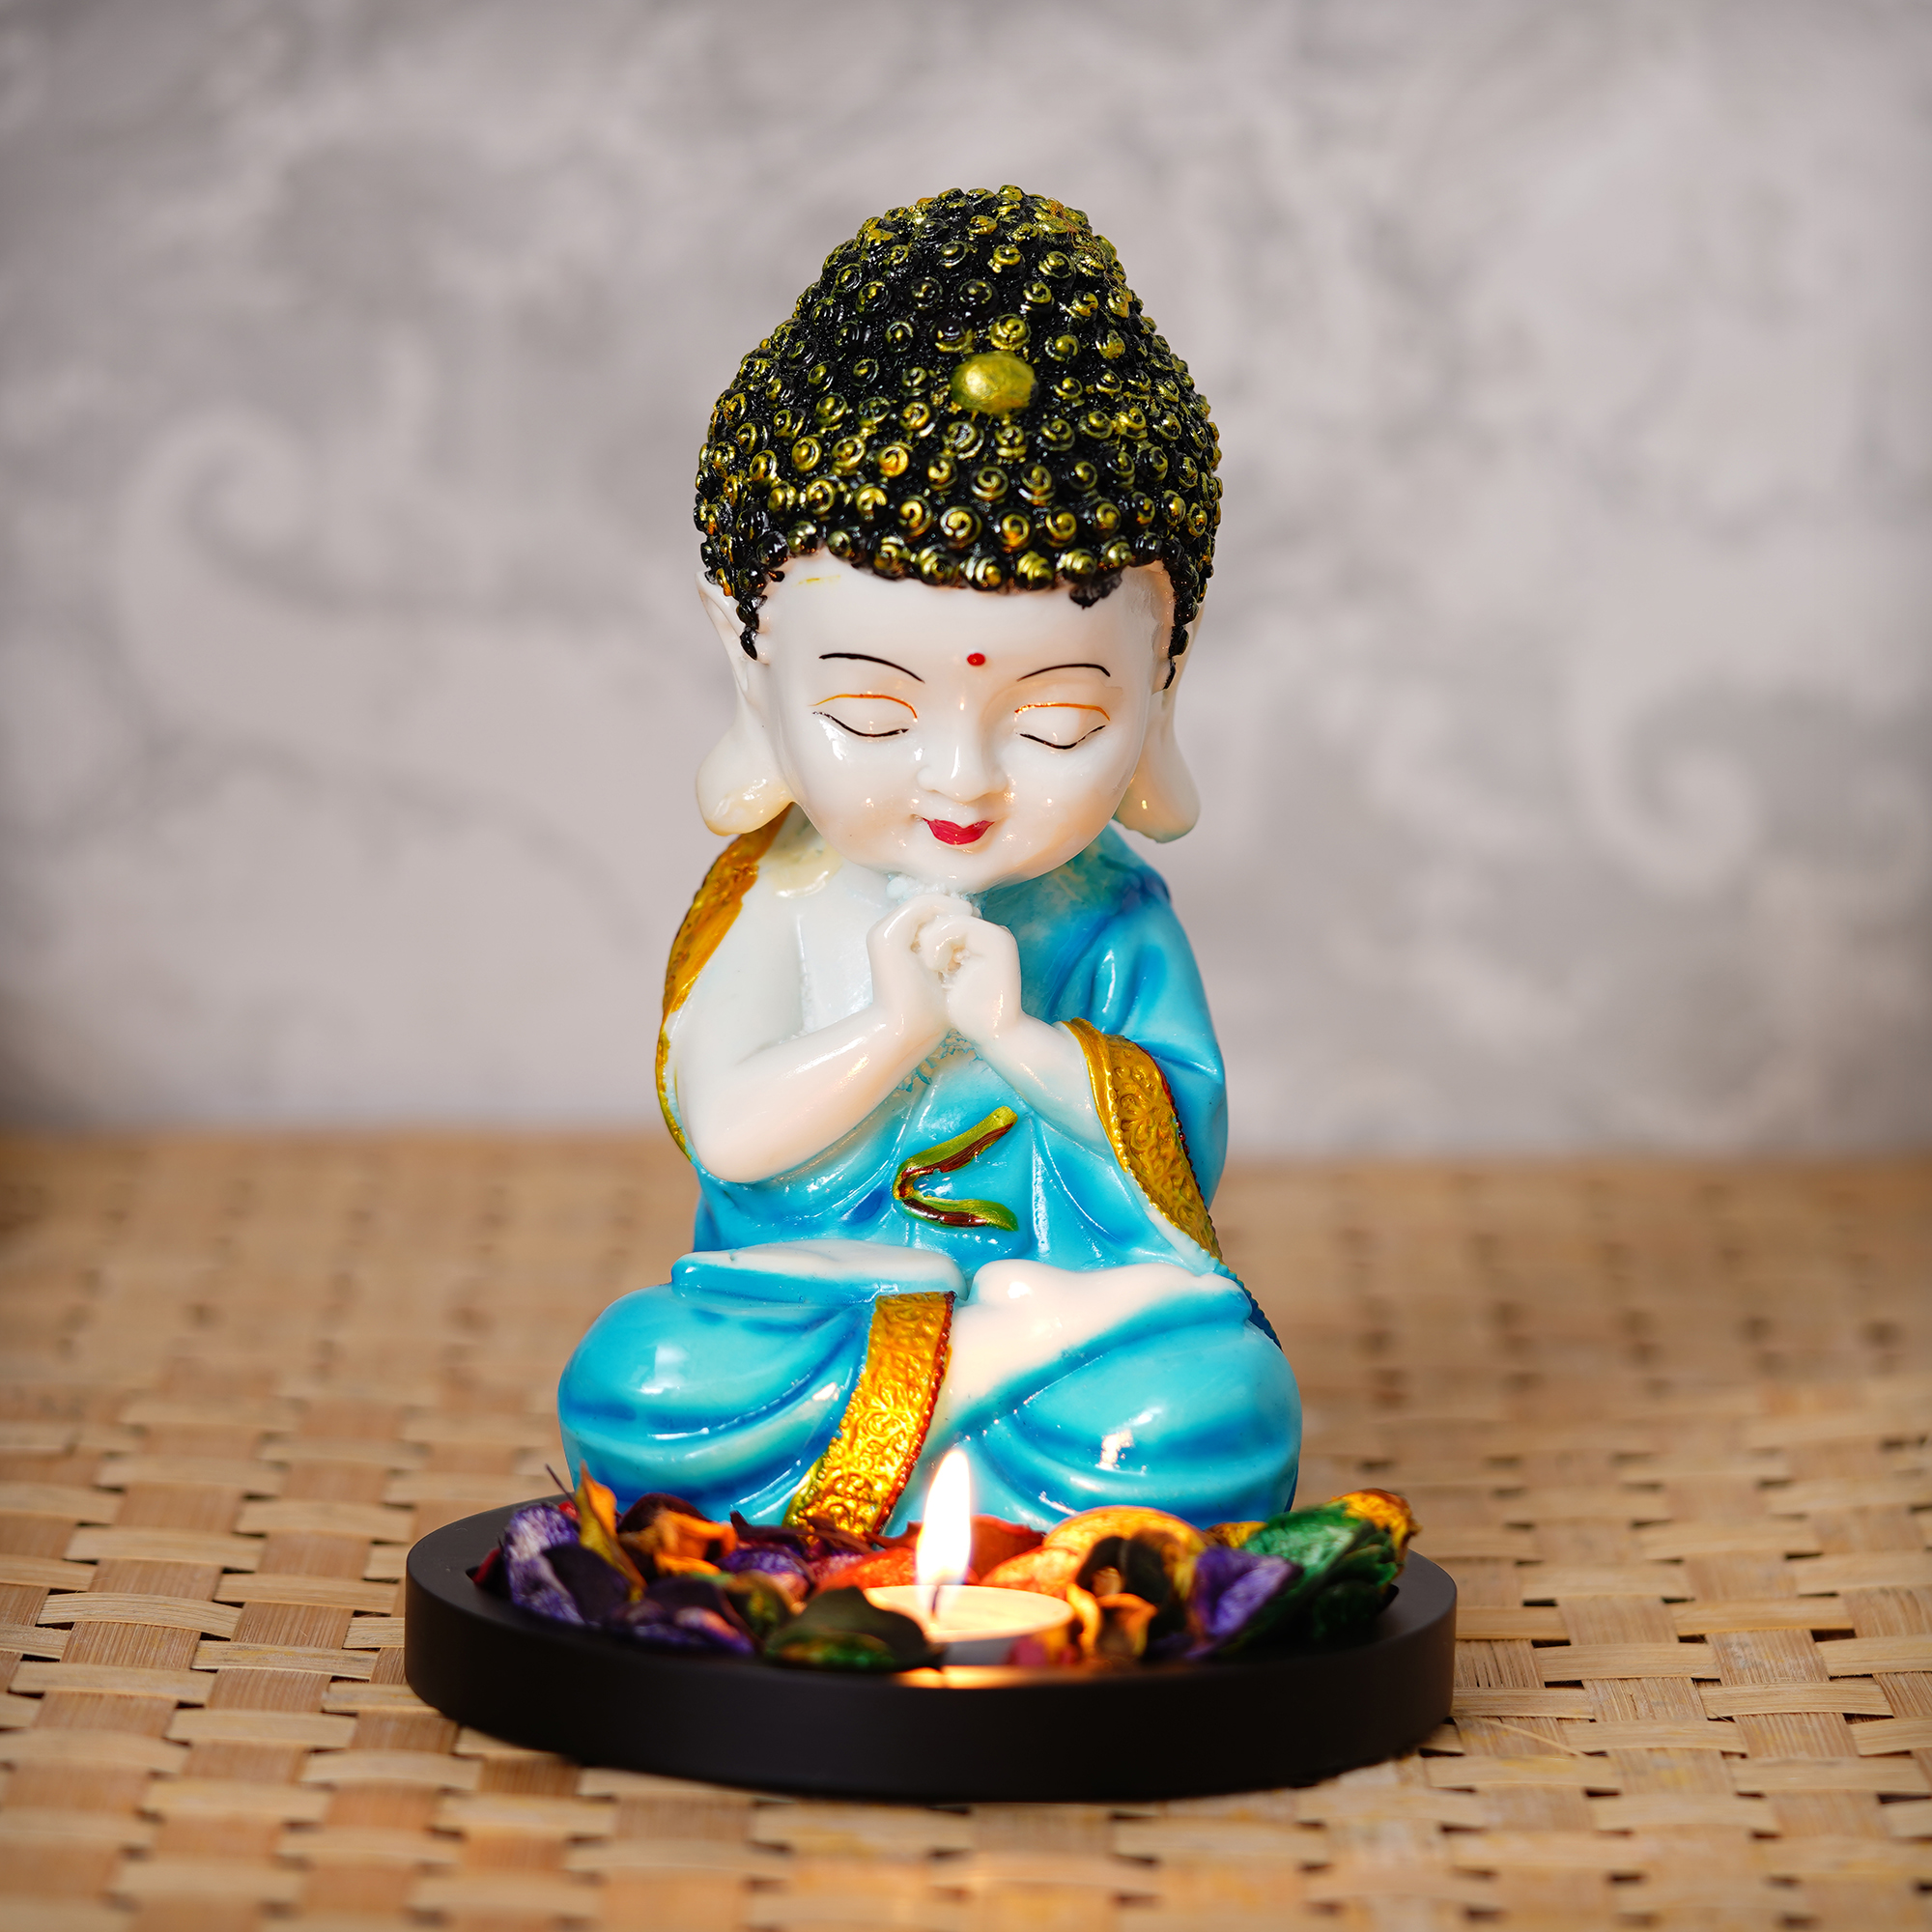 Praying Blue Monk Buddha with Wooden Base, Fragranced Petals and Tealight Indian Home Decor